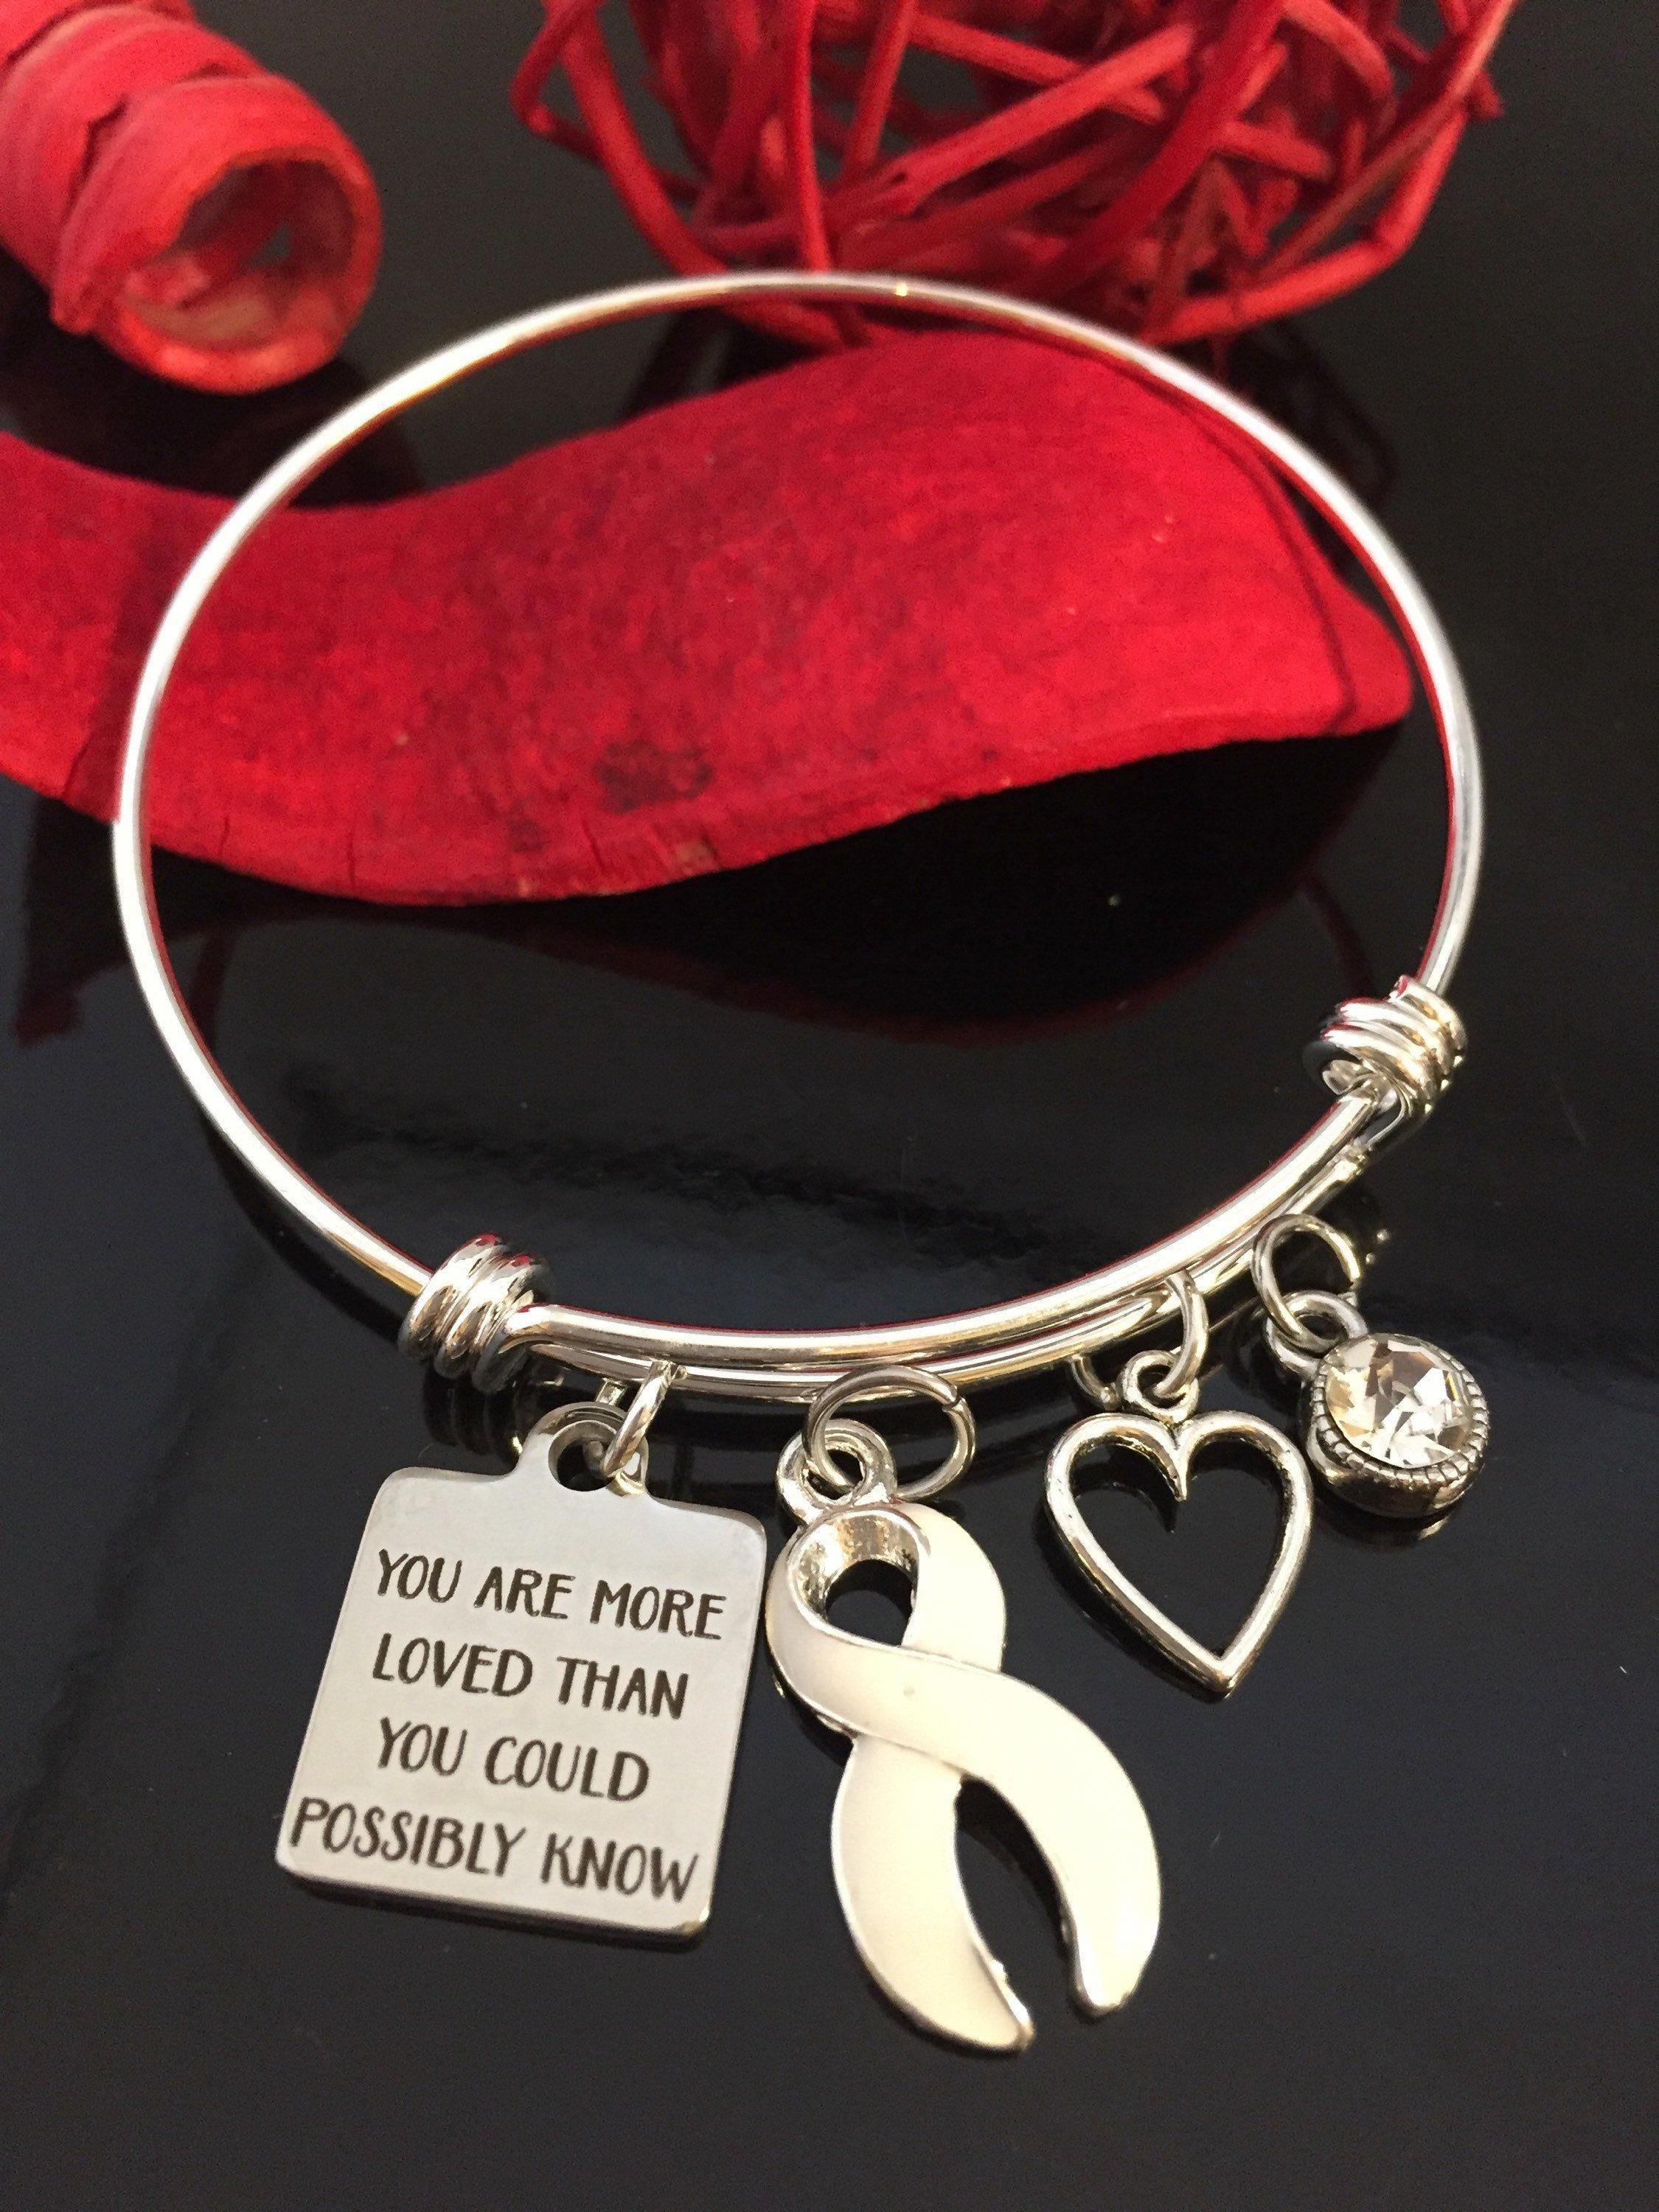 White Ribbon Charm Bracelet You Are Loved Lung Cancer Awareness Survivor Mesothelioma Emphysema By Rockyourcausejewelry On Etsy